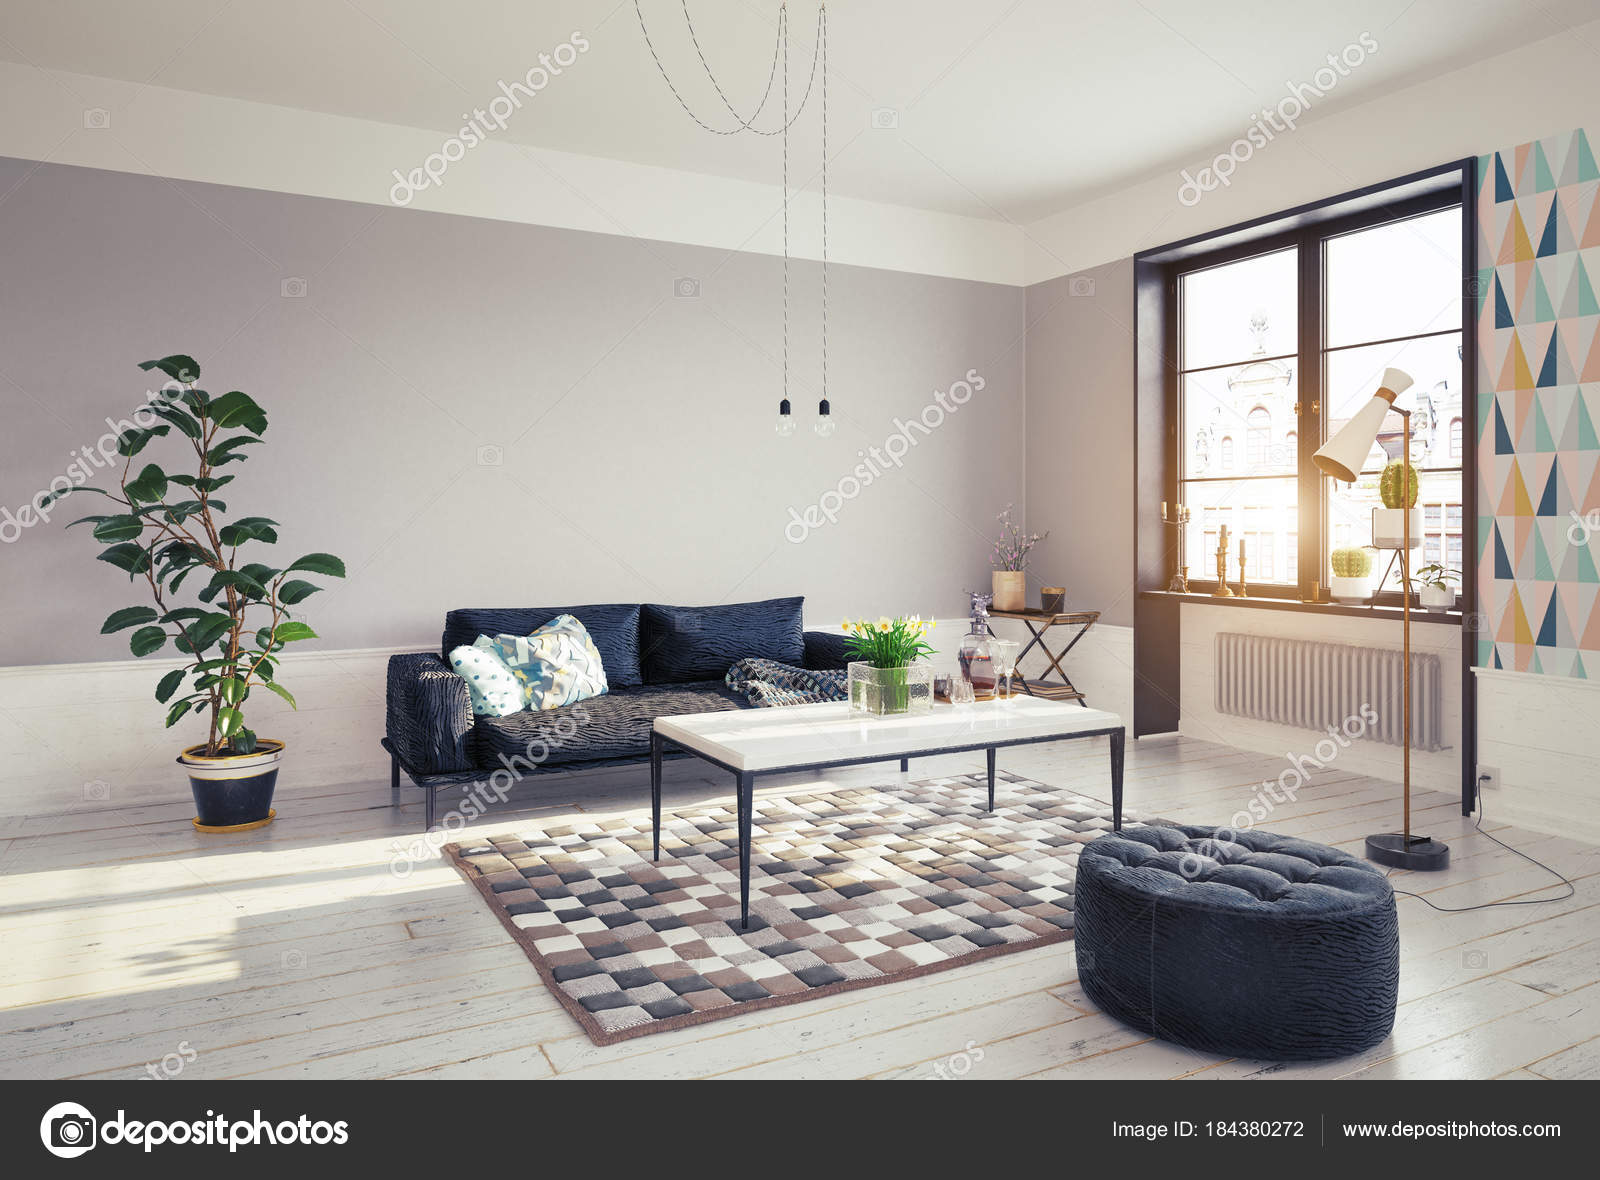 living room big window home decorating ideas corner view modern design grey walls stock photo